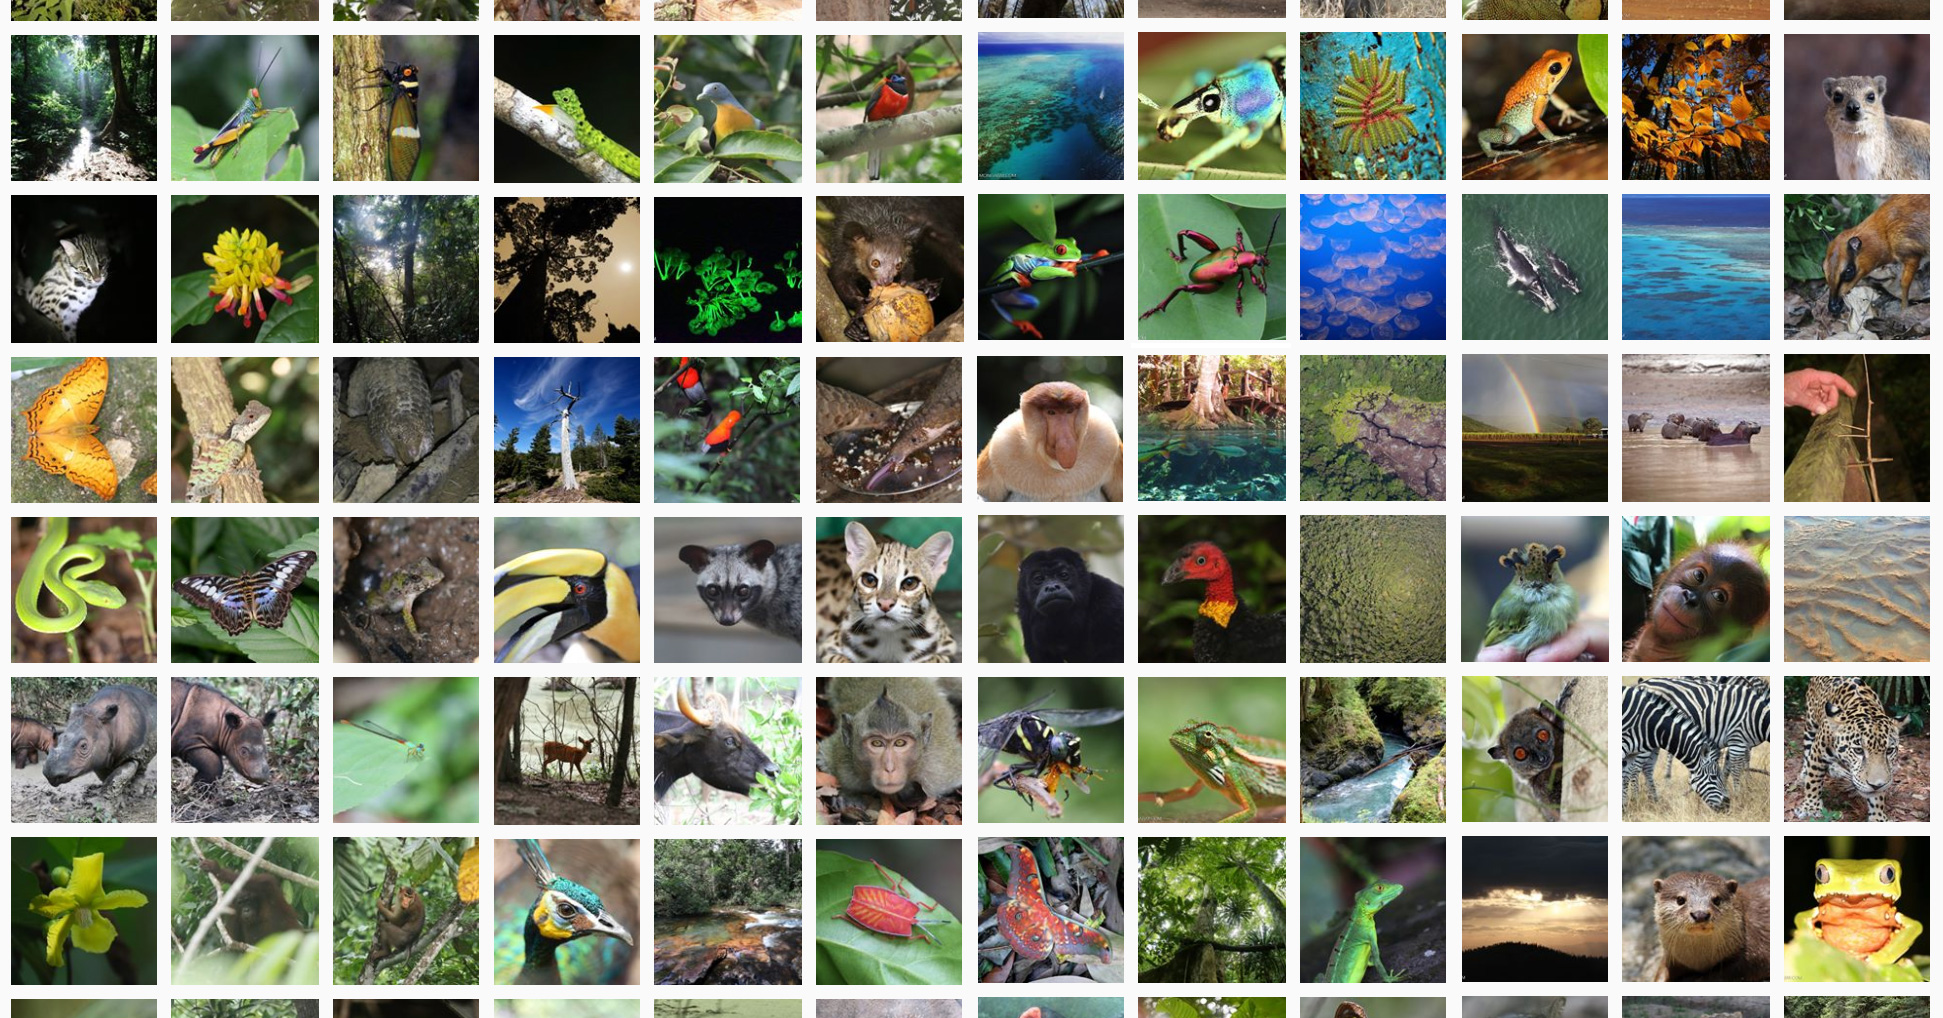 Why do rainforests have so many kinds of plants and animals?